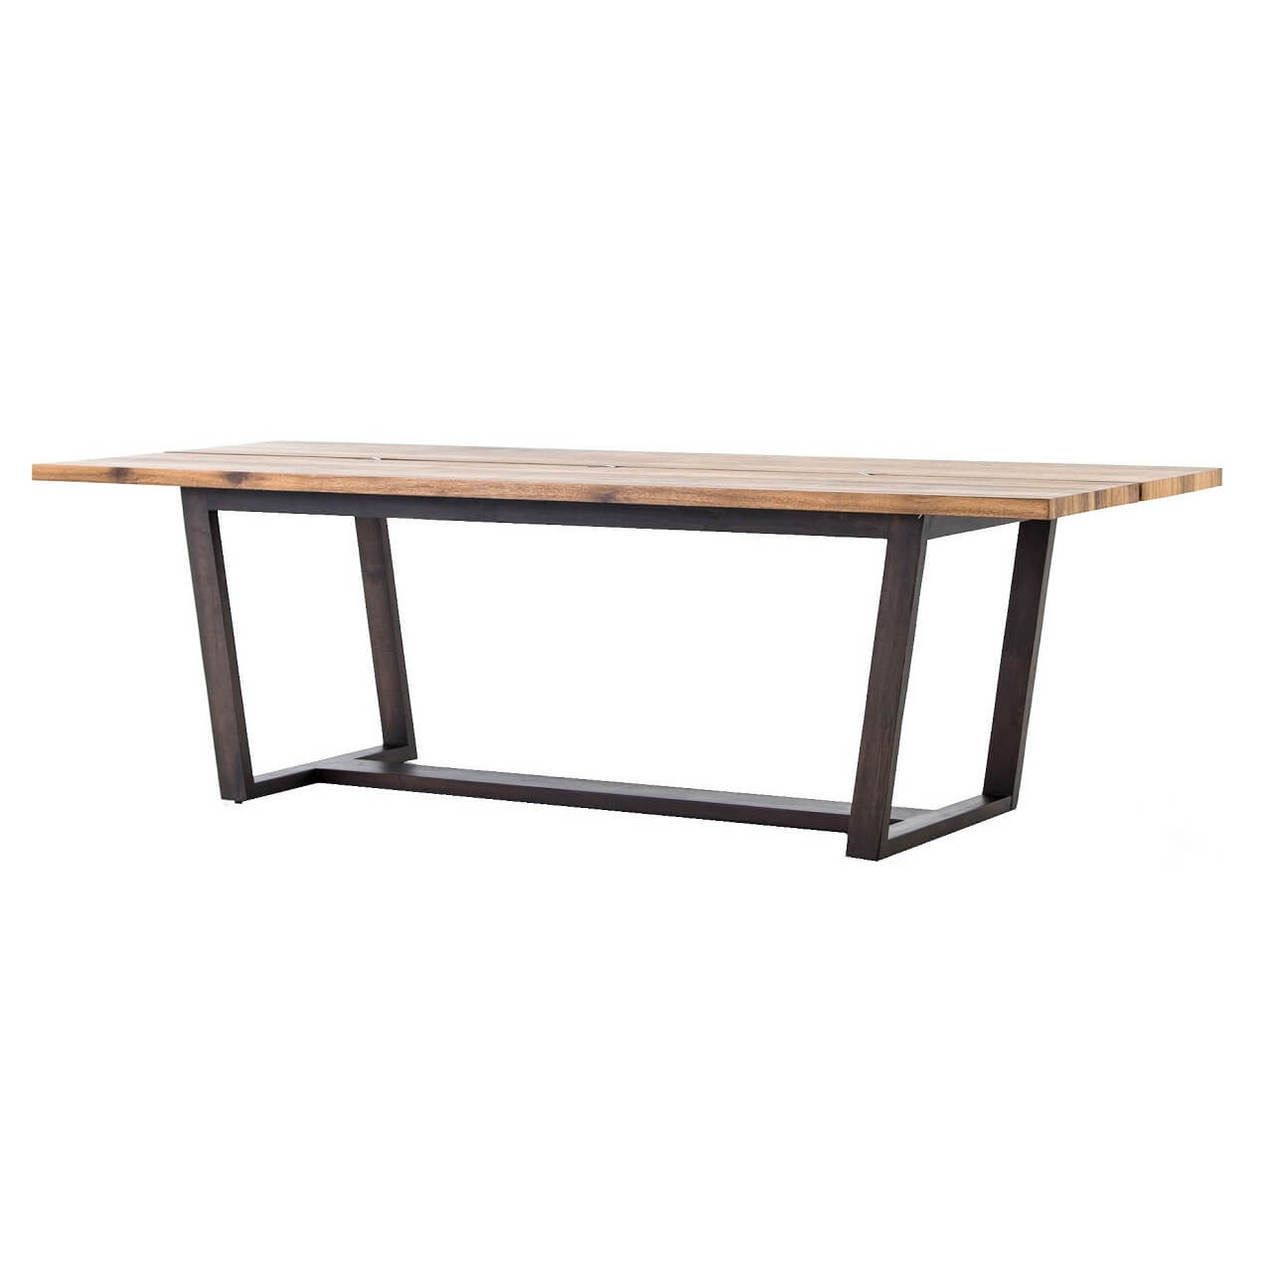 contemporary rustic modern furniture outdoor. Chase Rustic Modern Plank Wood Dining Table 98\ Contemporary Furniture Outdoor A